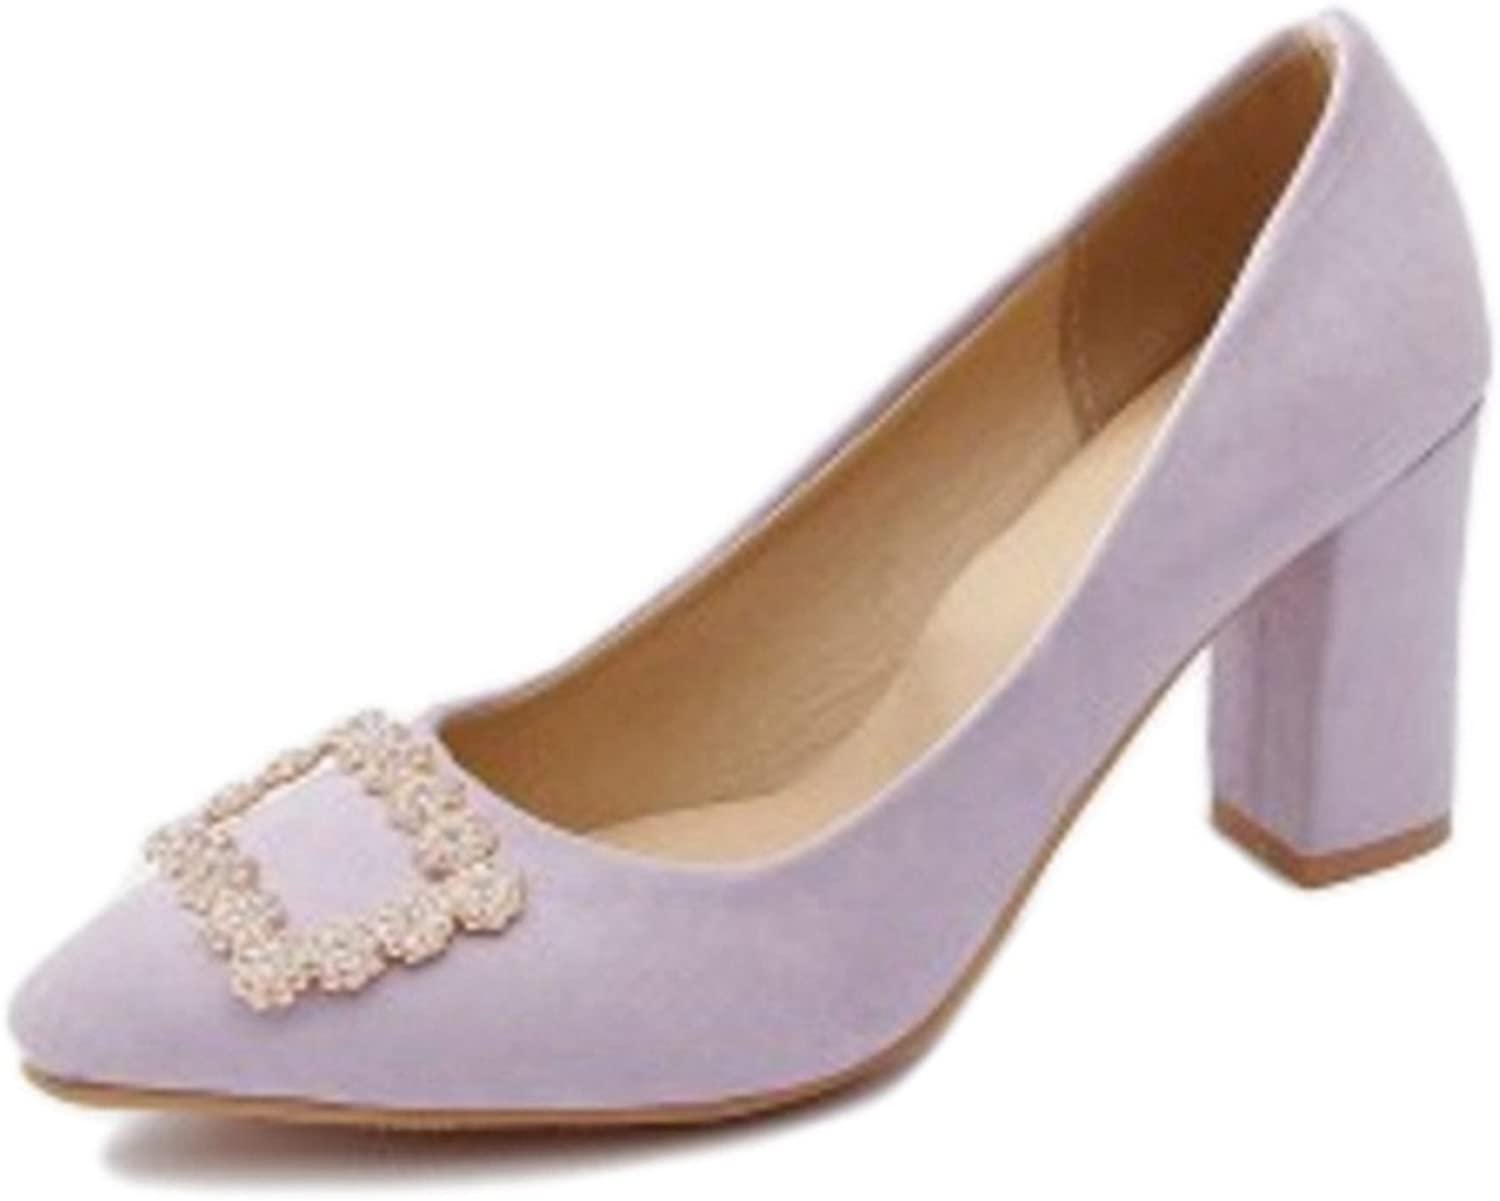 Smilice Working Pumps with Pointed Toe and Chunky Heel for Office Ladies with Plus Size Available